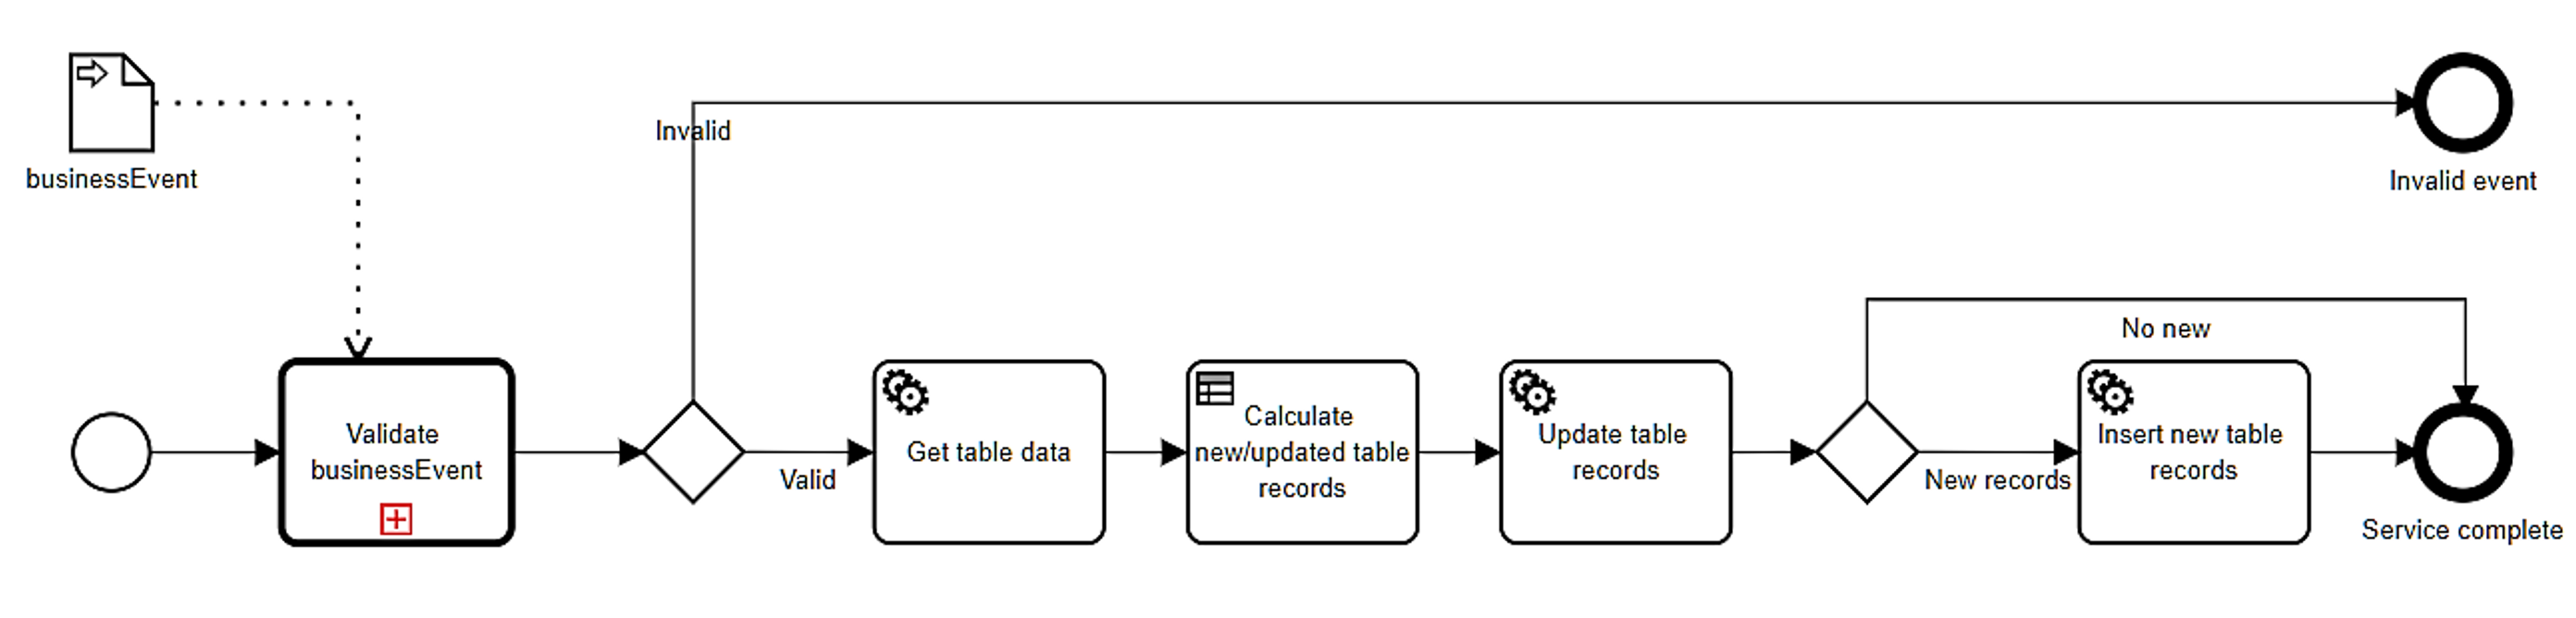 Bruce Silver's blog - A Methodology for Low-Code Business Automation with BPMN and DMN